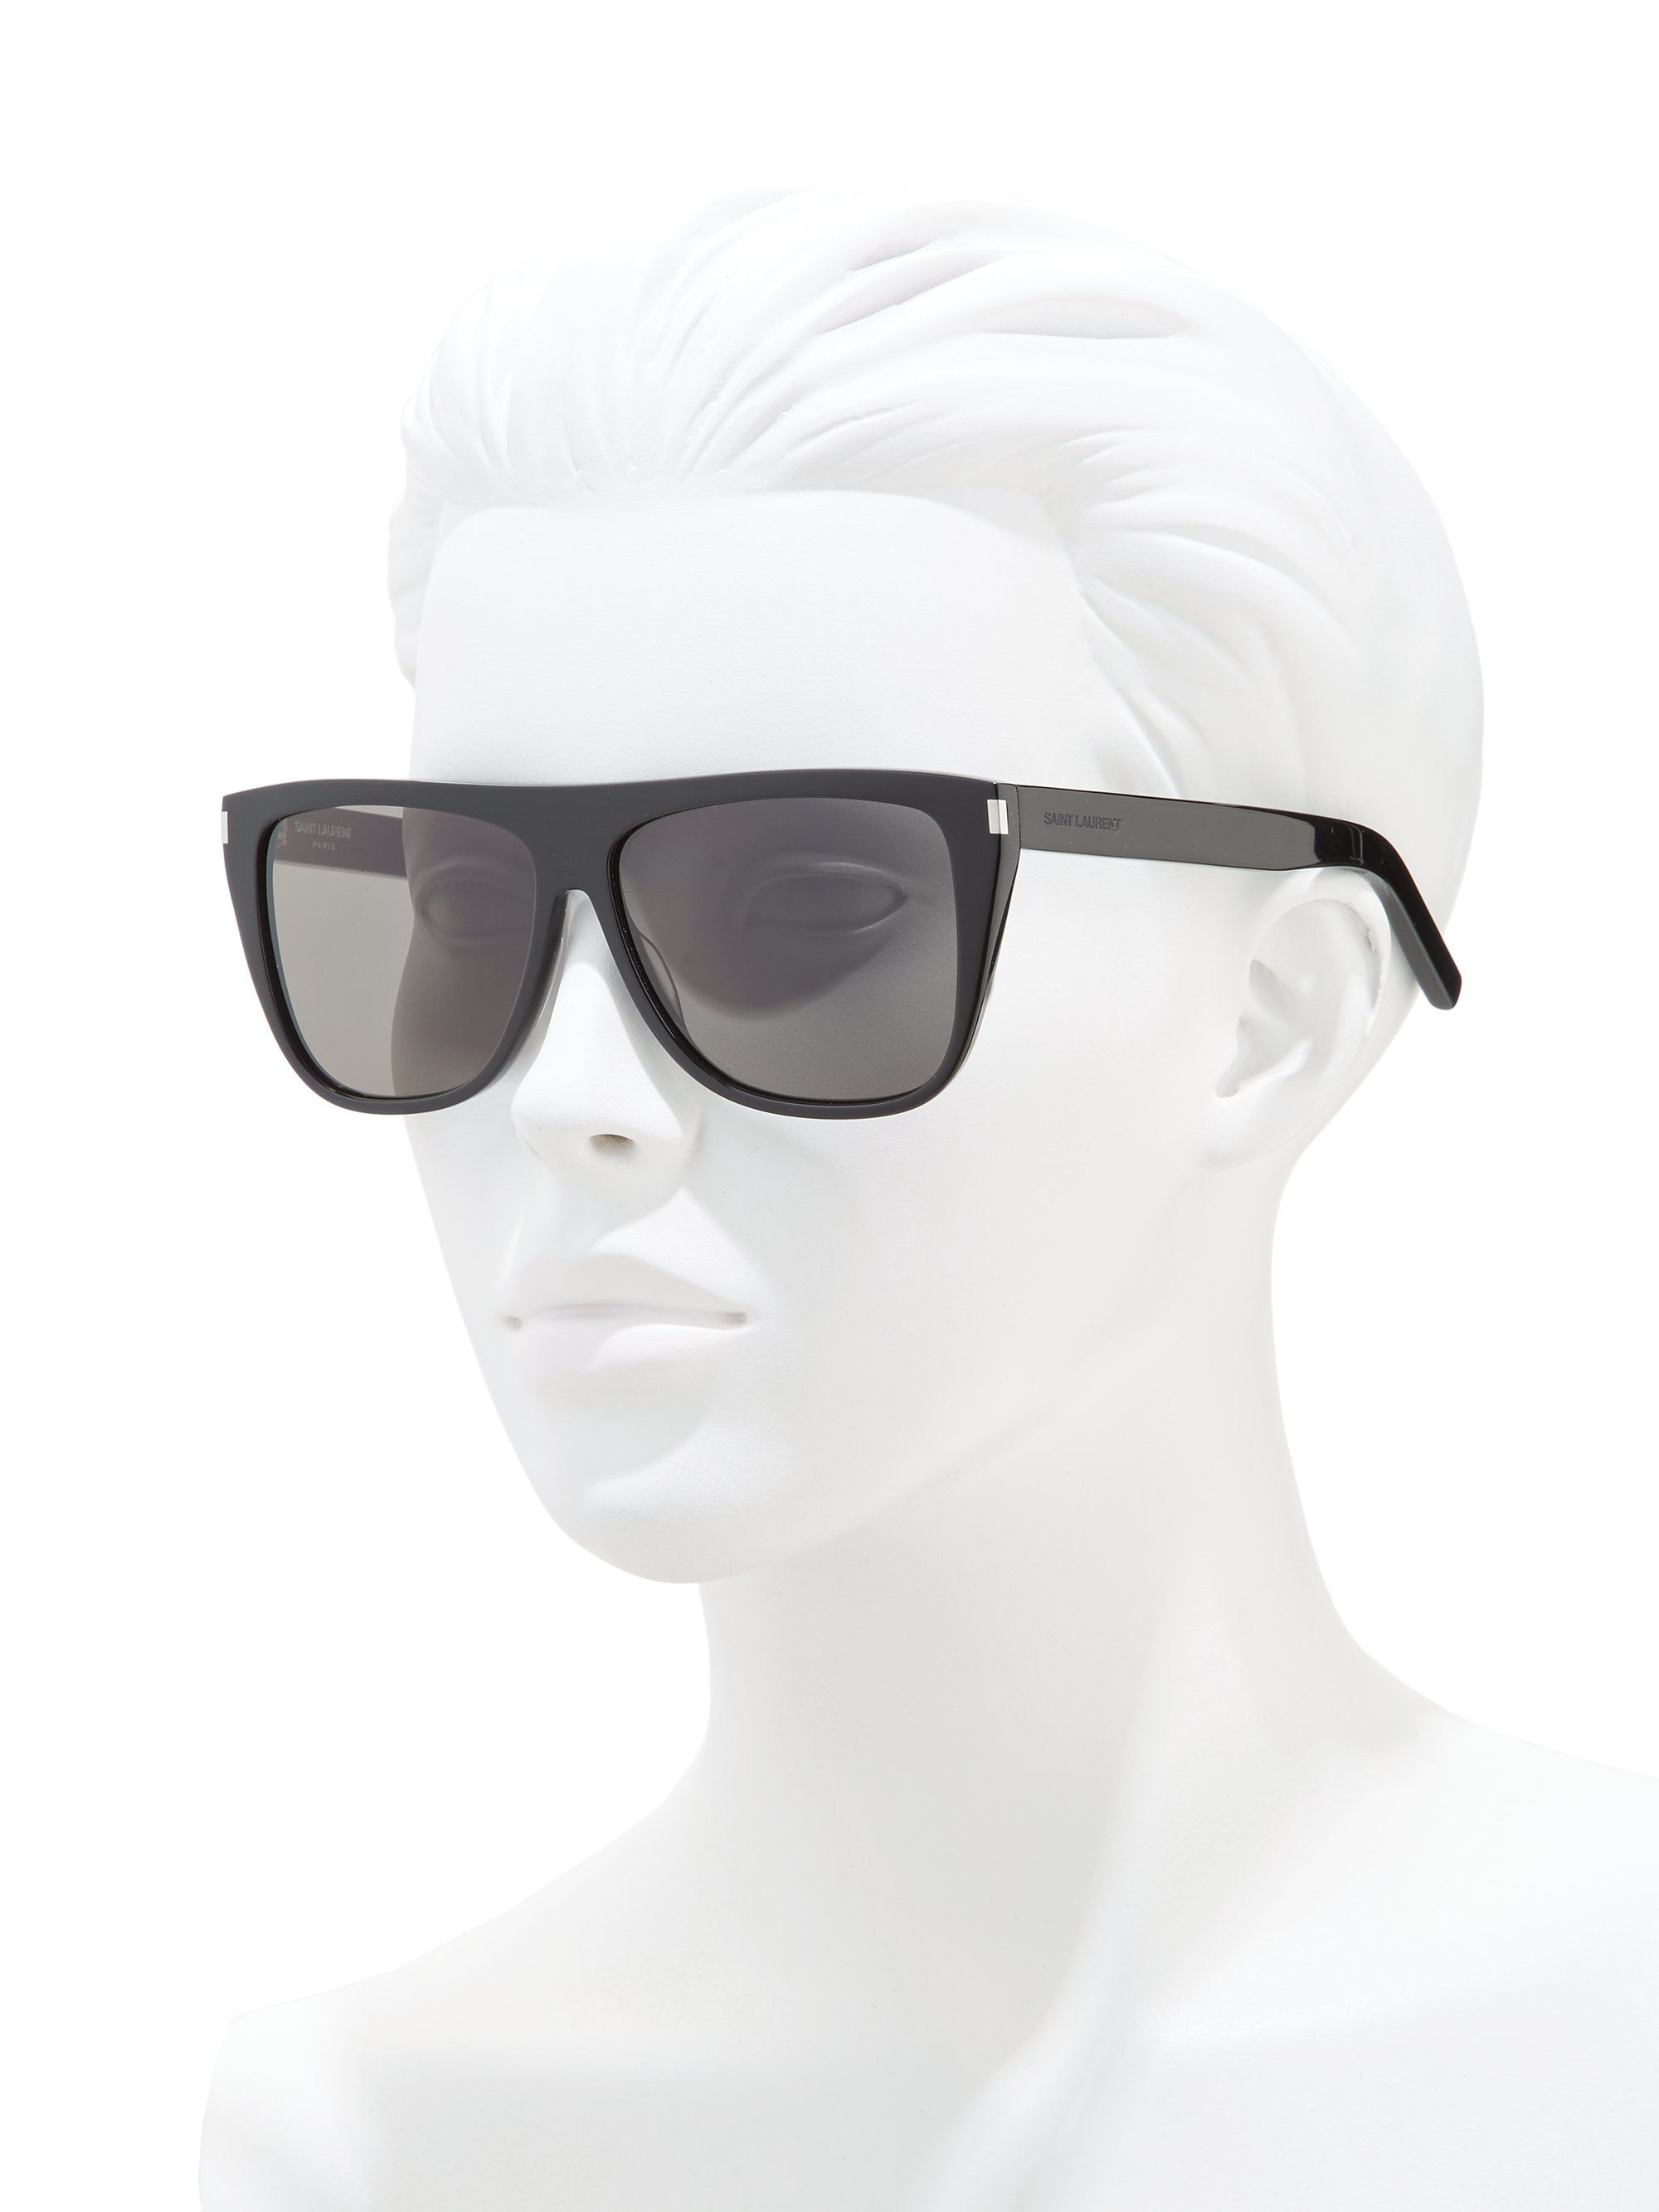 flat top sunglasses j3wh  givenchy flat top sunglasses